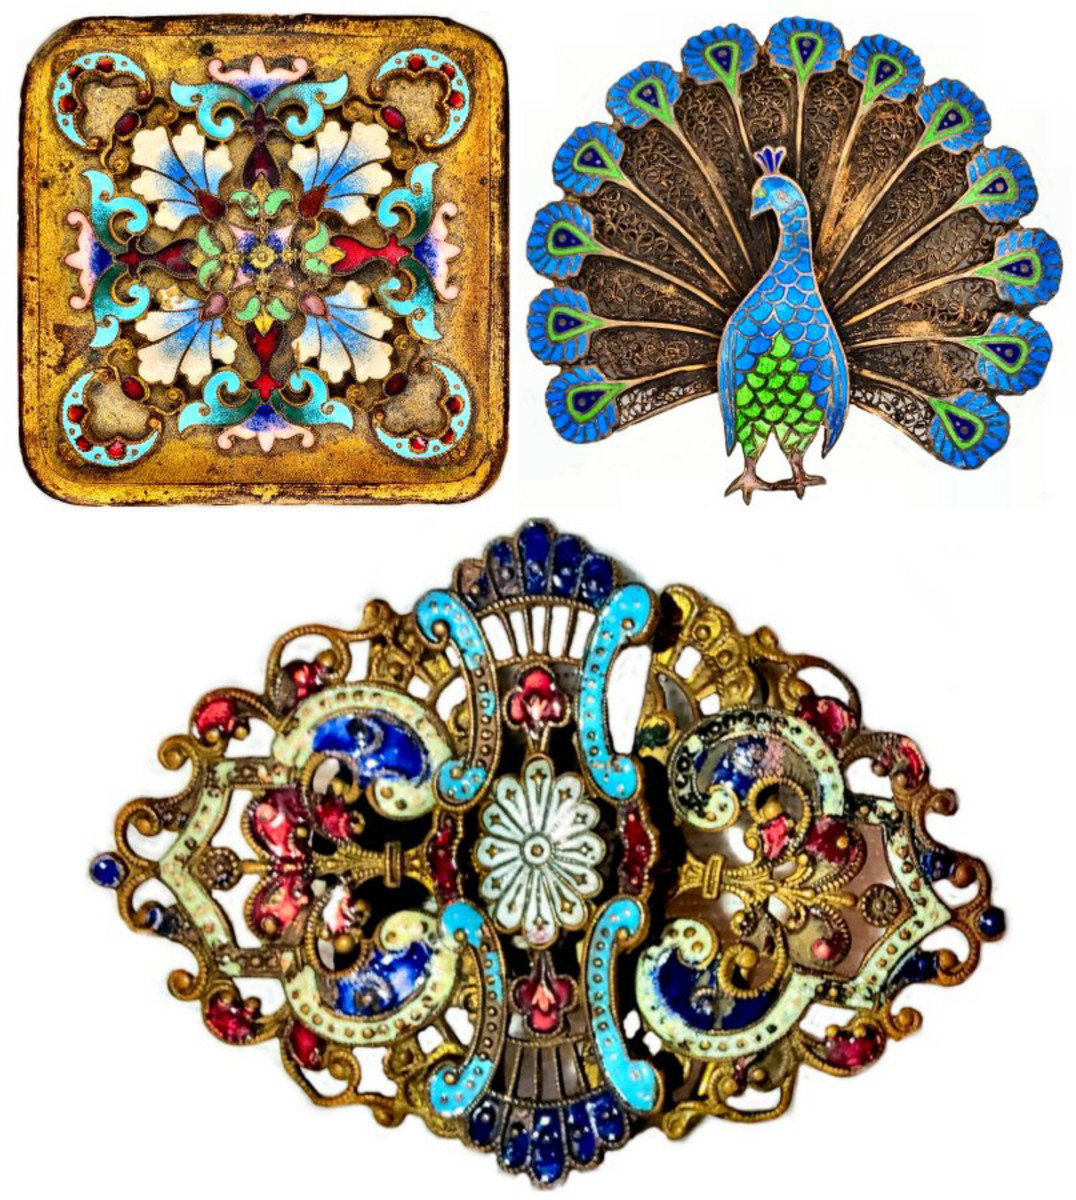 A combination of cloisonné and champlevé can be found in a single piece. These pieces open the door to interesting discussions as to whether a piece is cloisonné or champlevé. These are examples of pieces some would identify as Cloisonné, others as champlevé, and others as a combination. Certainly, the 20th century peacock brooch from Portugal displays characteristics of both. The tips of the tail feathers are champlevé, whereas the body is clearly cloisonné. At the upper left is a late 19th century gilt and intricately enameled box from France. The piece at the bottom is an elaborate, two-piece belt buckle that would have been worn on a cloth sash. The translucency of the brightly colored enamel and delicate swirls are nothing short of dazzling.